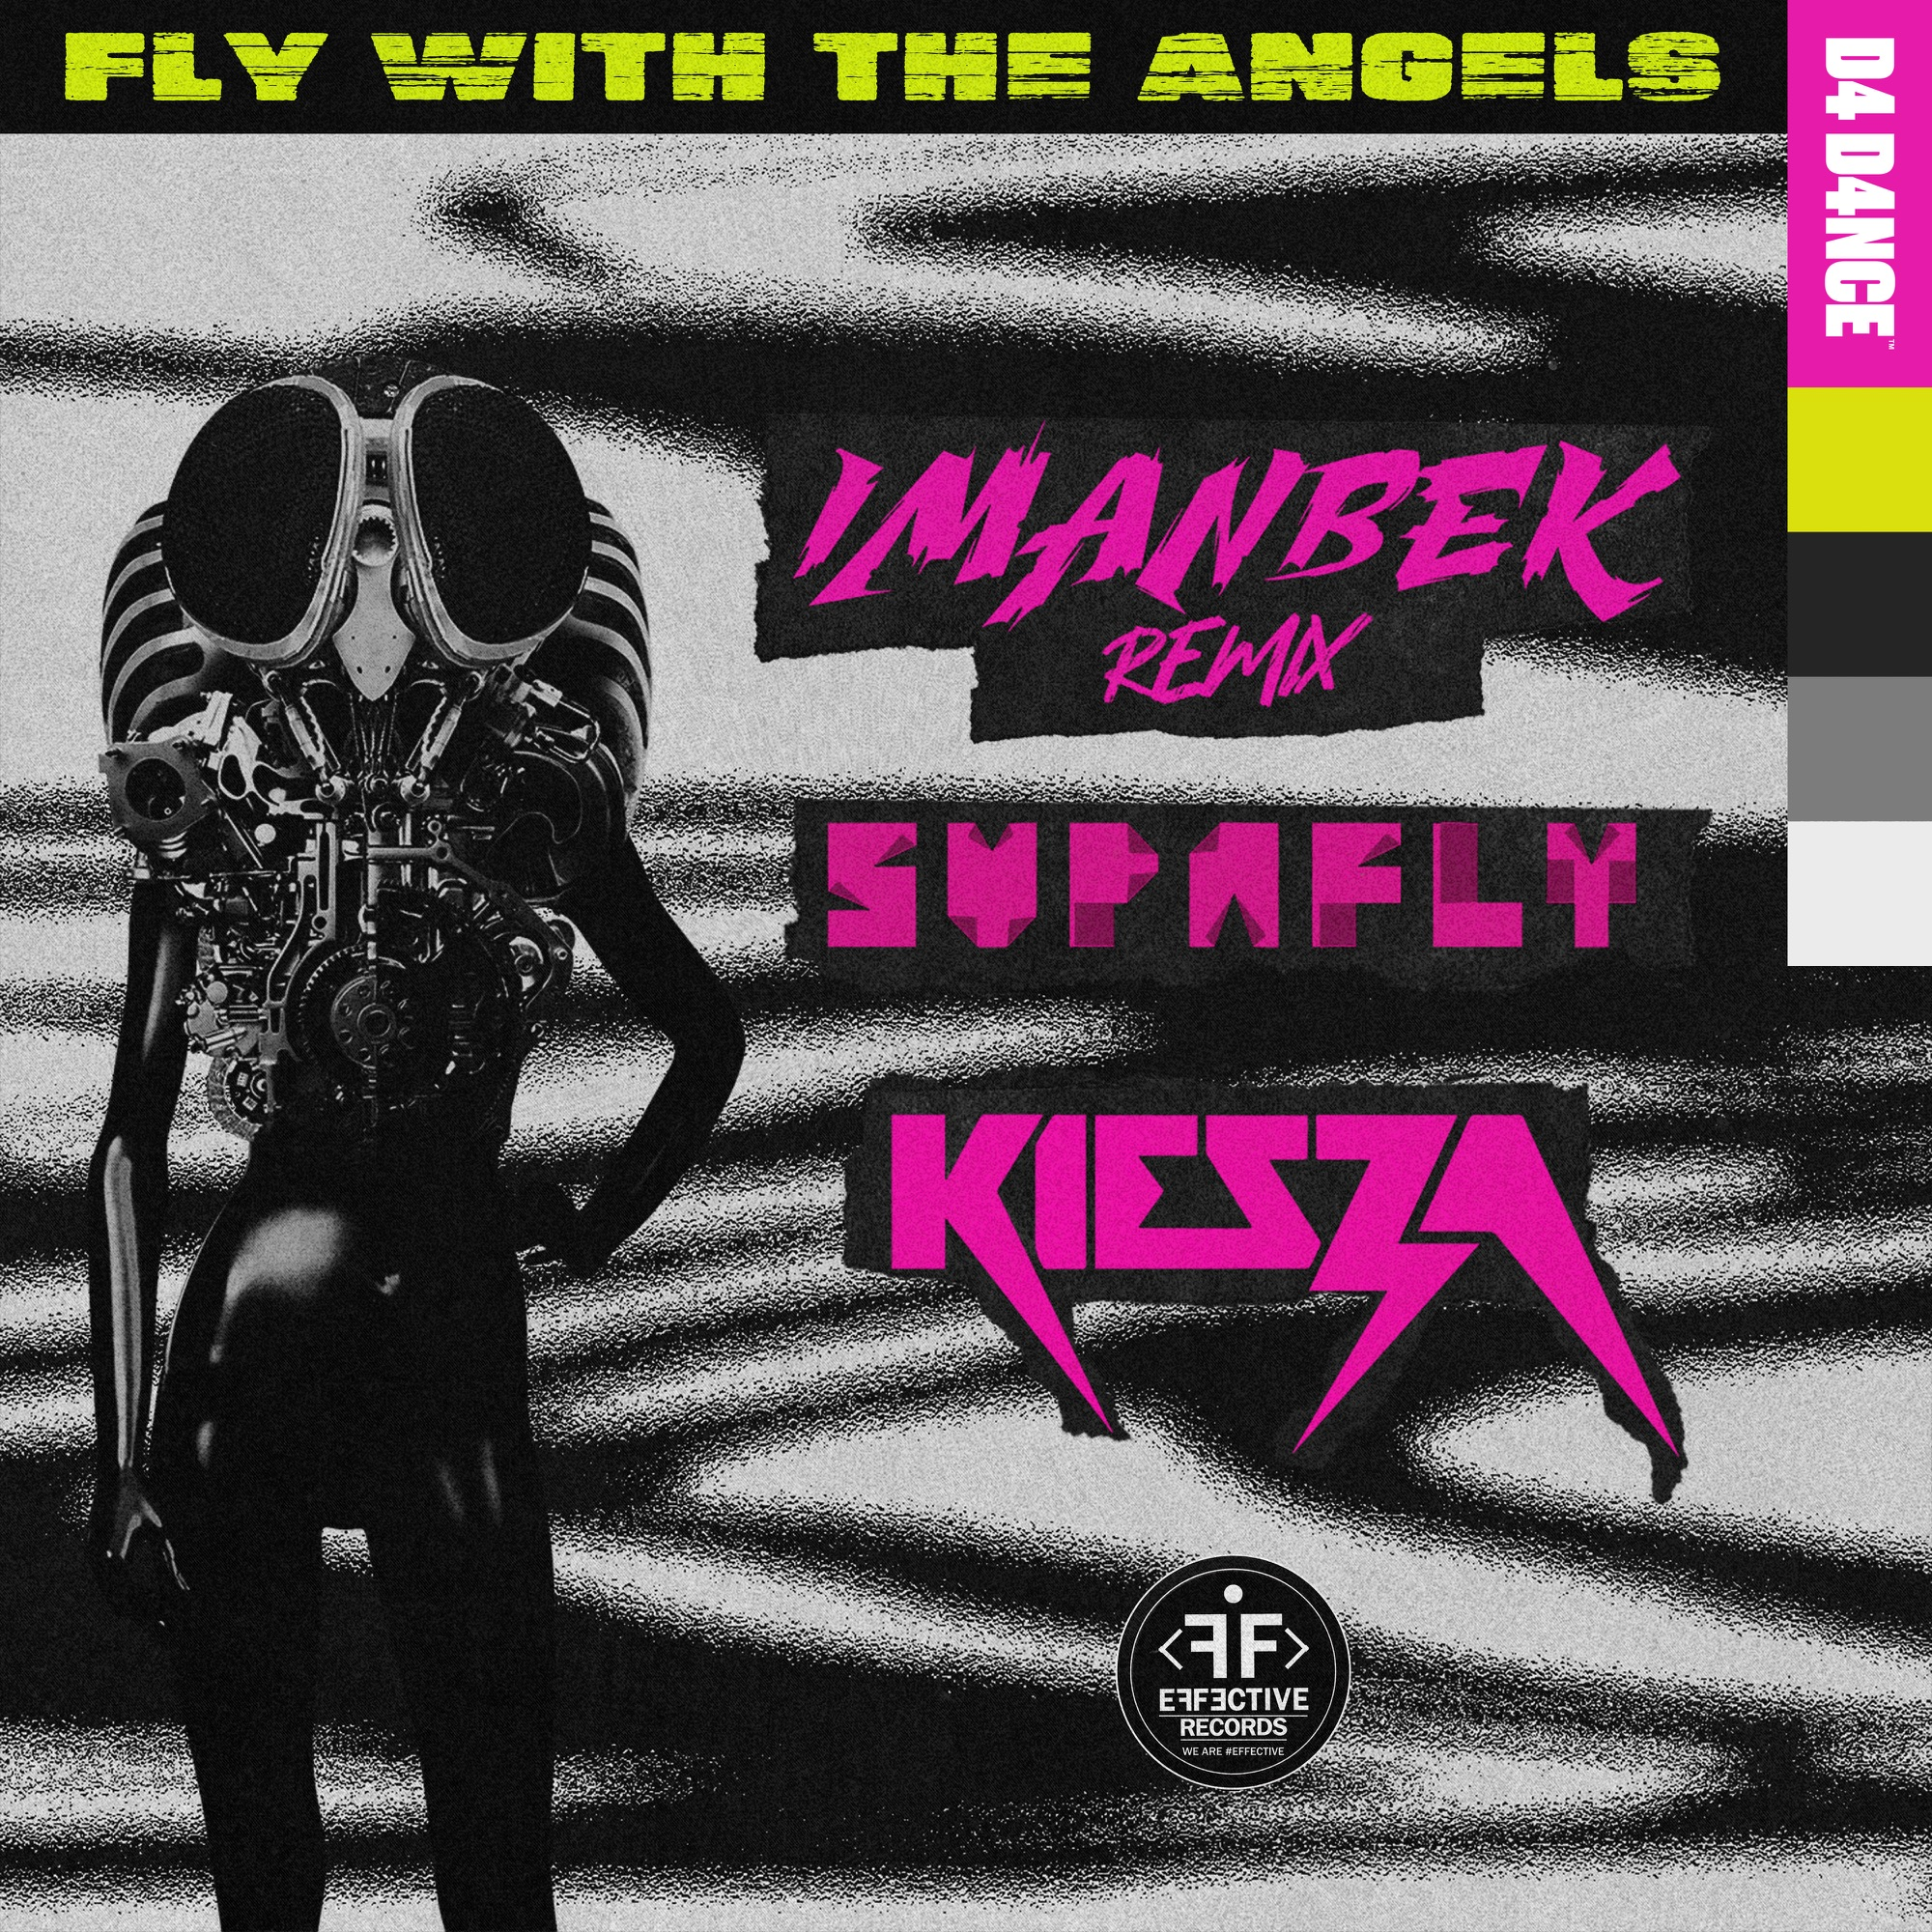 Art for Fly With The Angels (feat. Kiesza) [Imanbek Remix] by Supafly